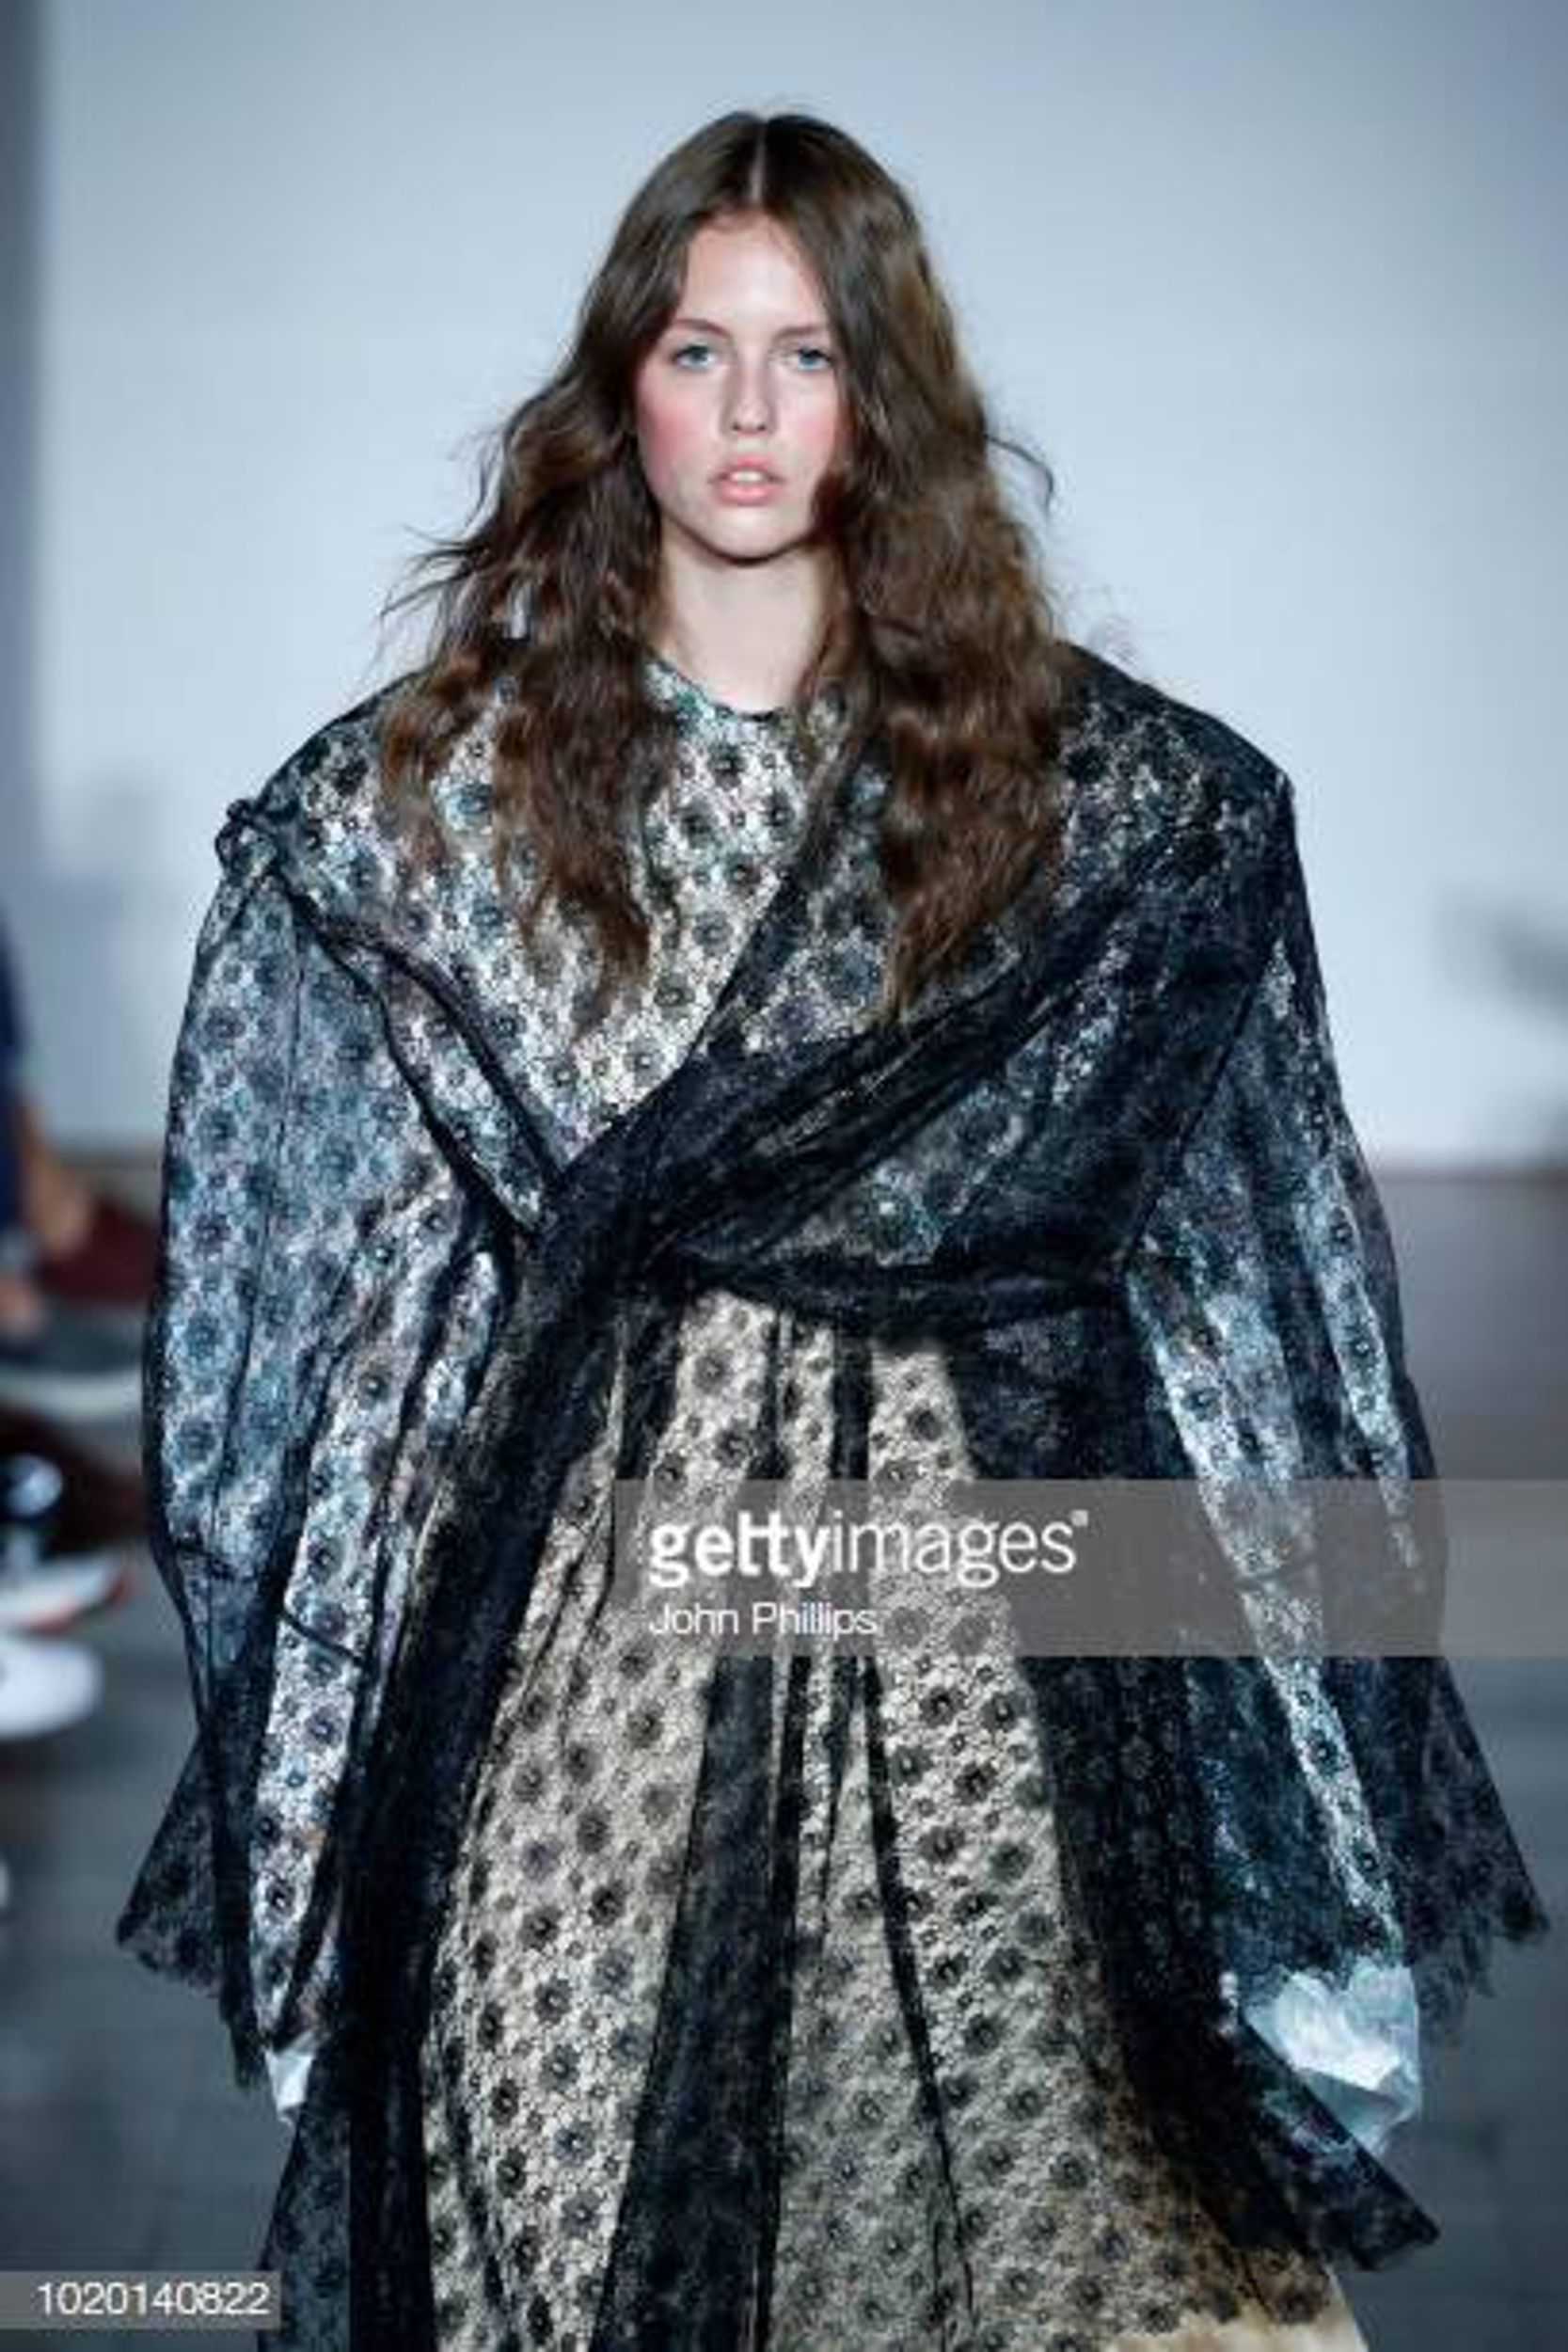 https://www.gettyimages.no/event/bik-bok-runway-award-oslo-runway-ss19-775204531#/designers-ida-falck-oien-and-harald-lunde-helgesen-acknowledge-the-picture-id1020089514